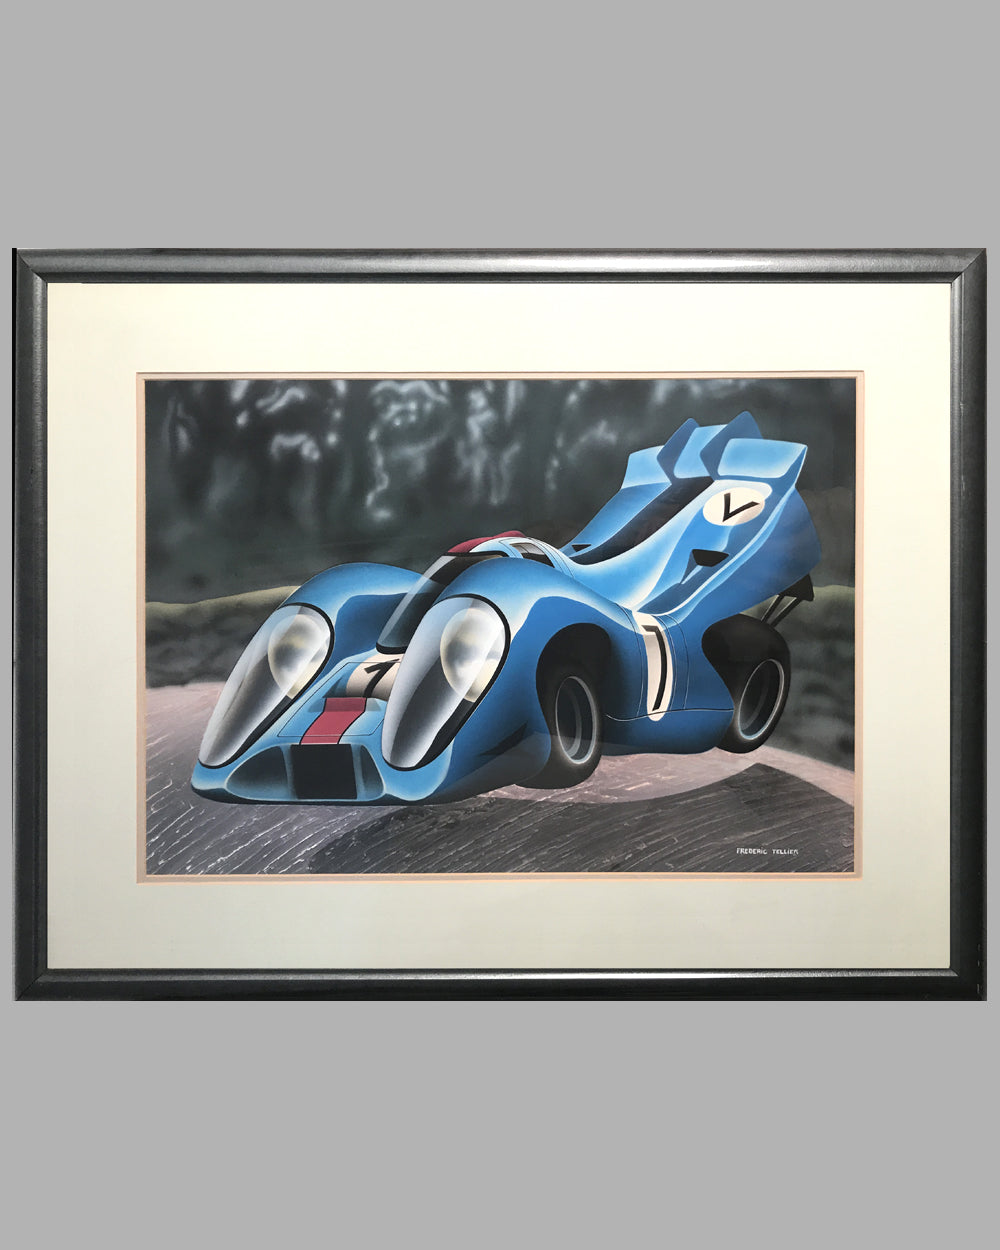 Flying Porsche 917 airbrush painting by Frederic Tellier